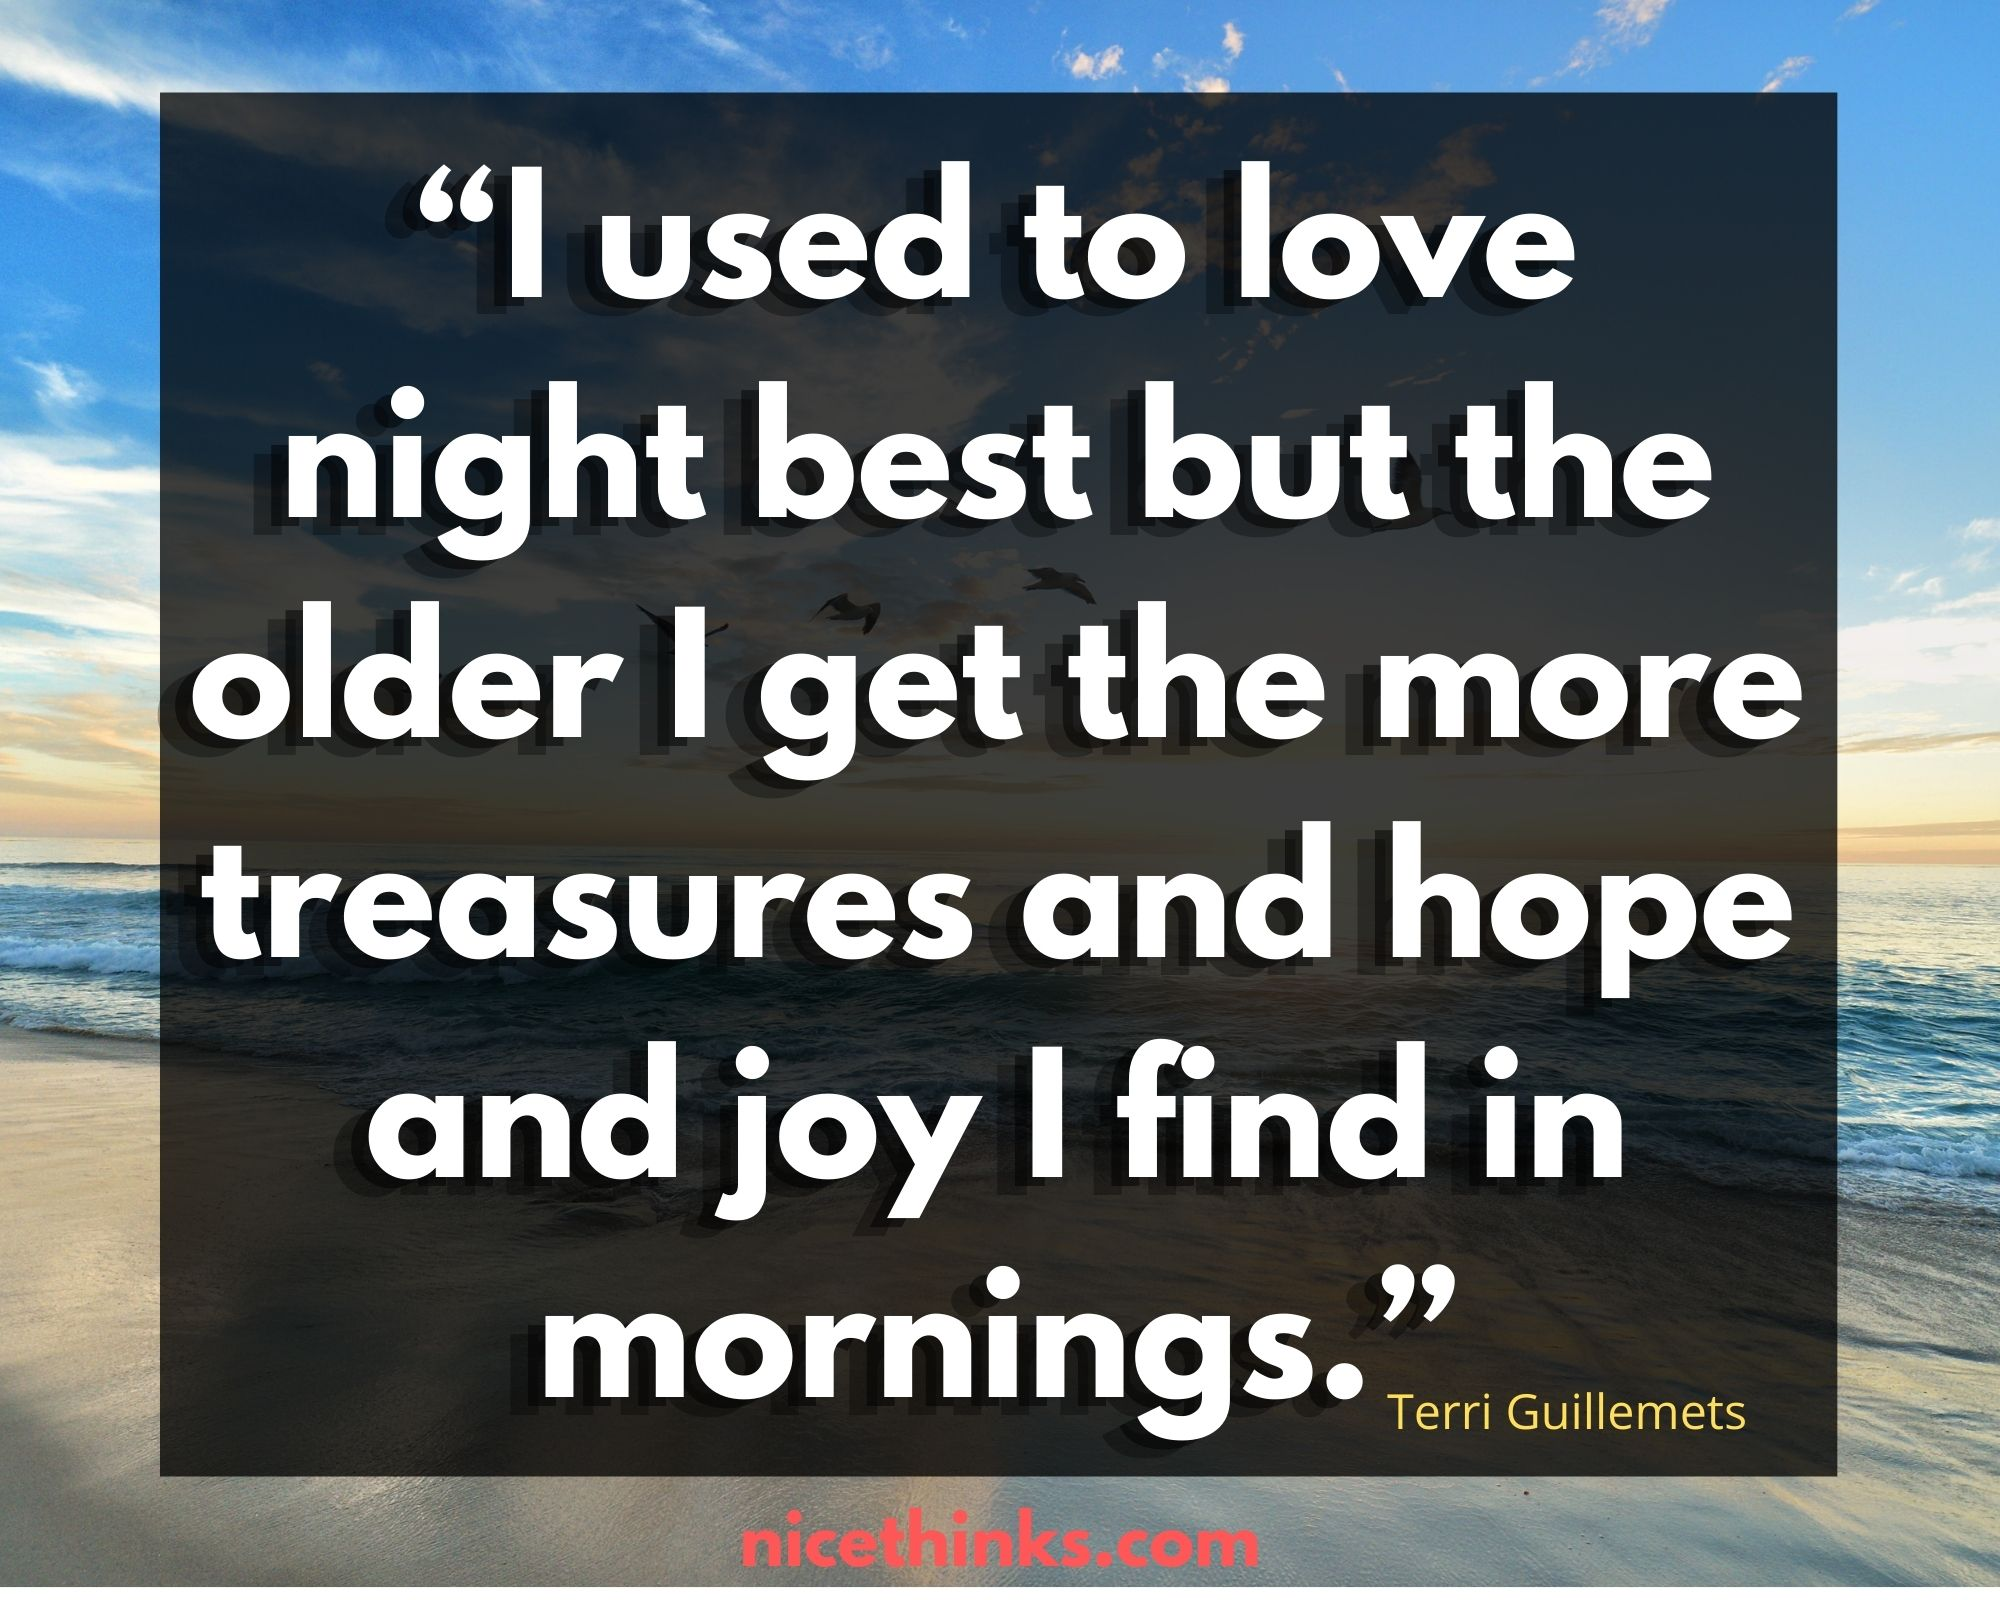 Quotes by Terri Guillemets